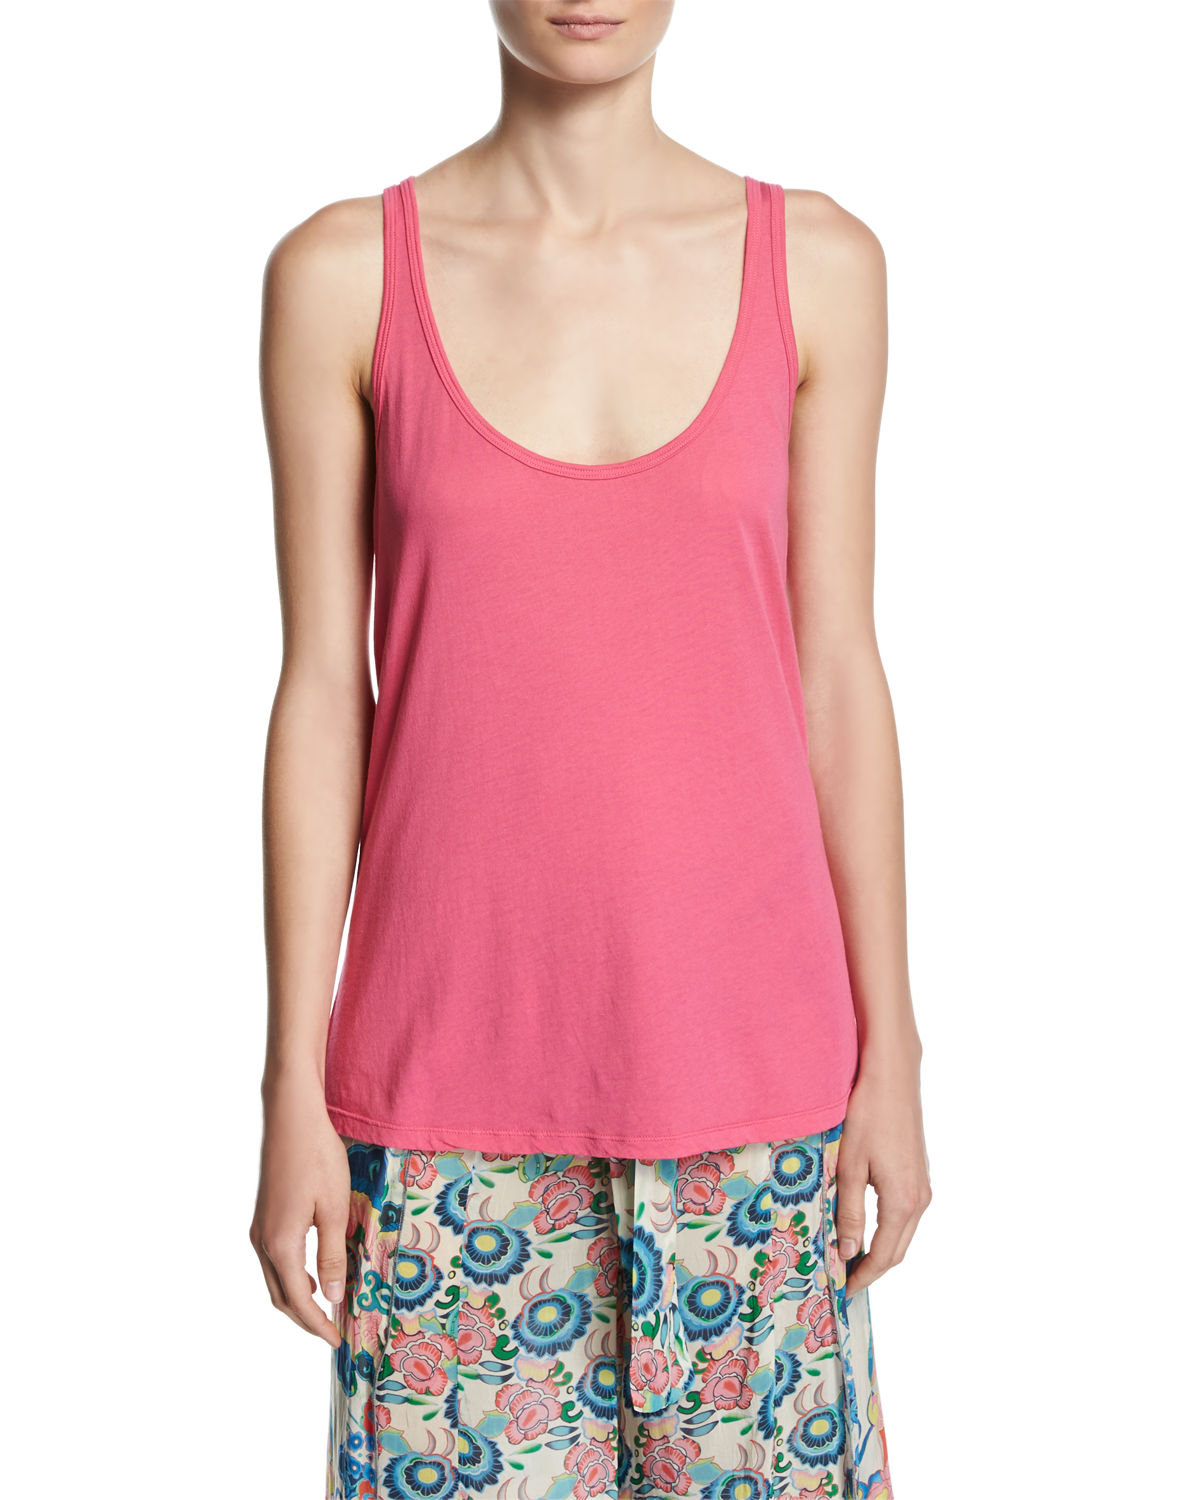 Cotton Modal Scoop-Neck Tank